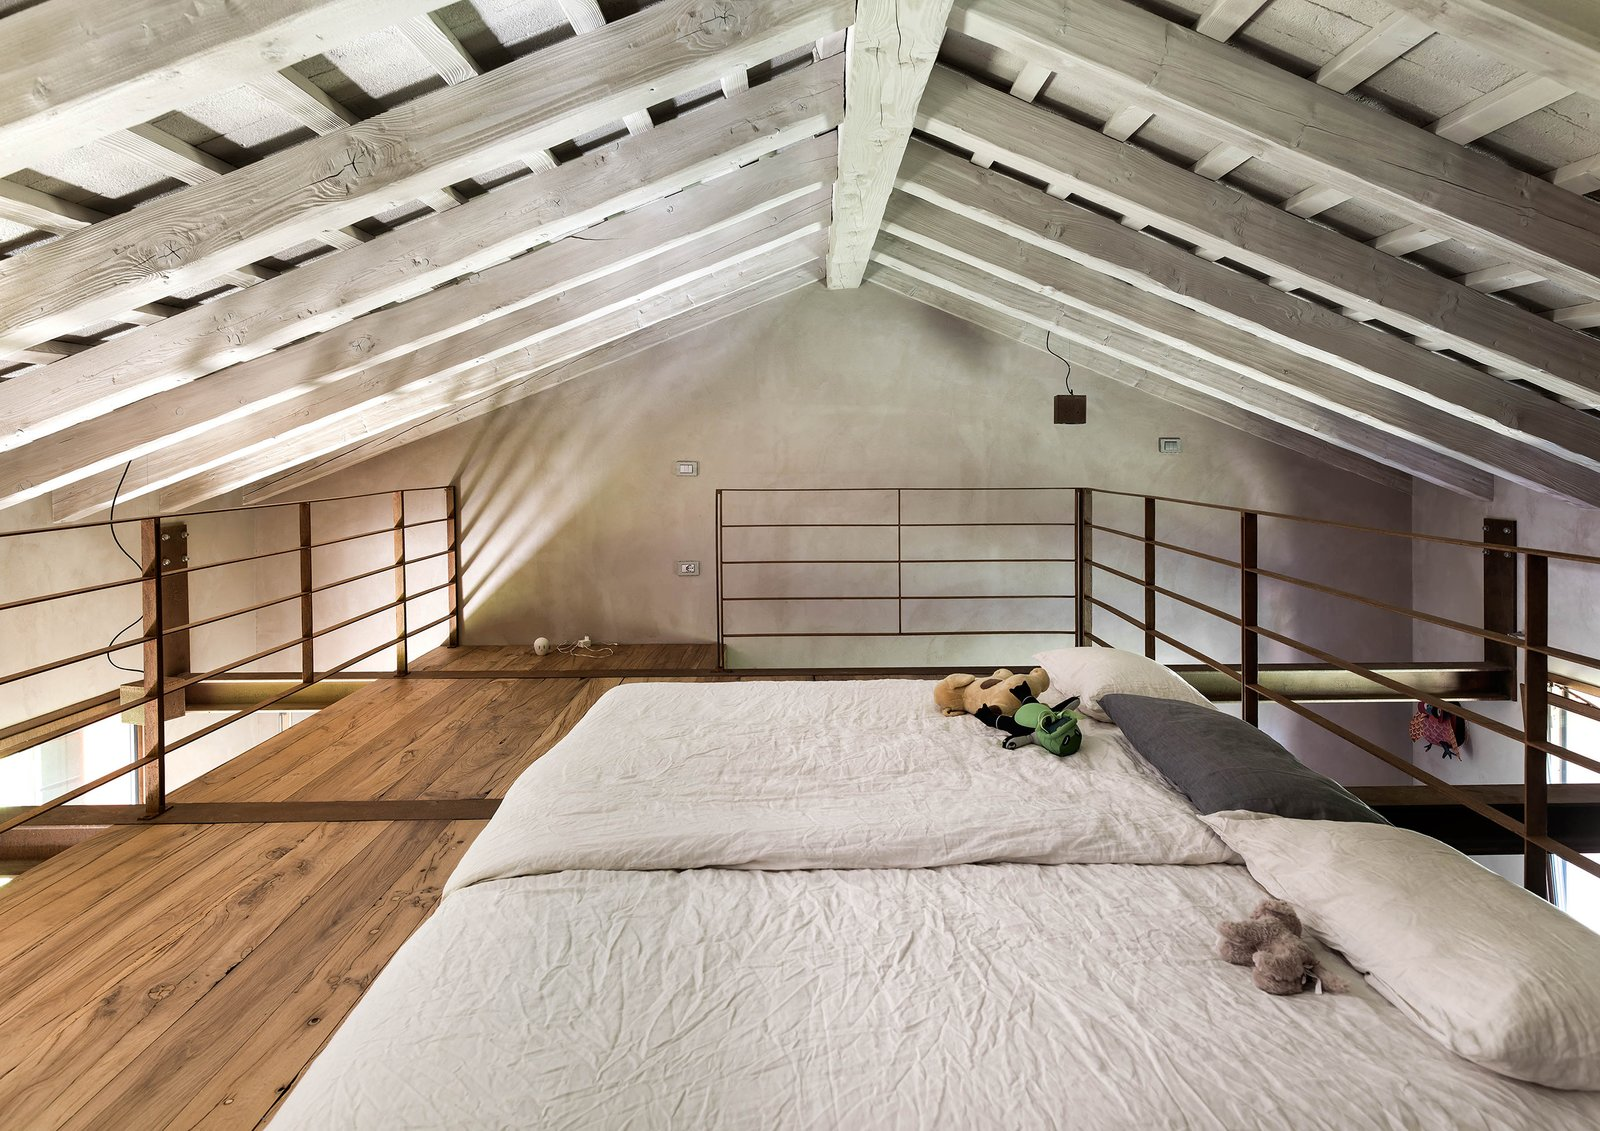 Bedroom, Bed, Ceiling Lighting, and Medium Hardwood Floor  Country House by zanon architetti associati